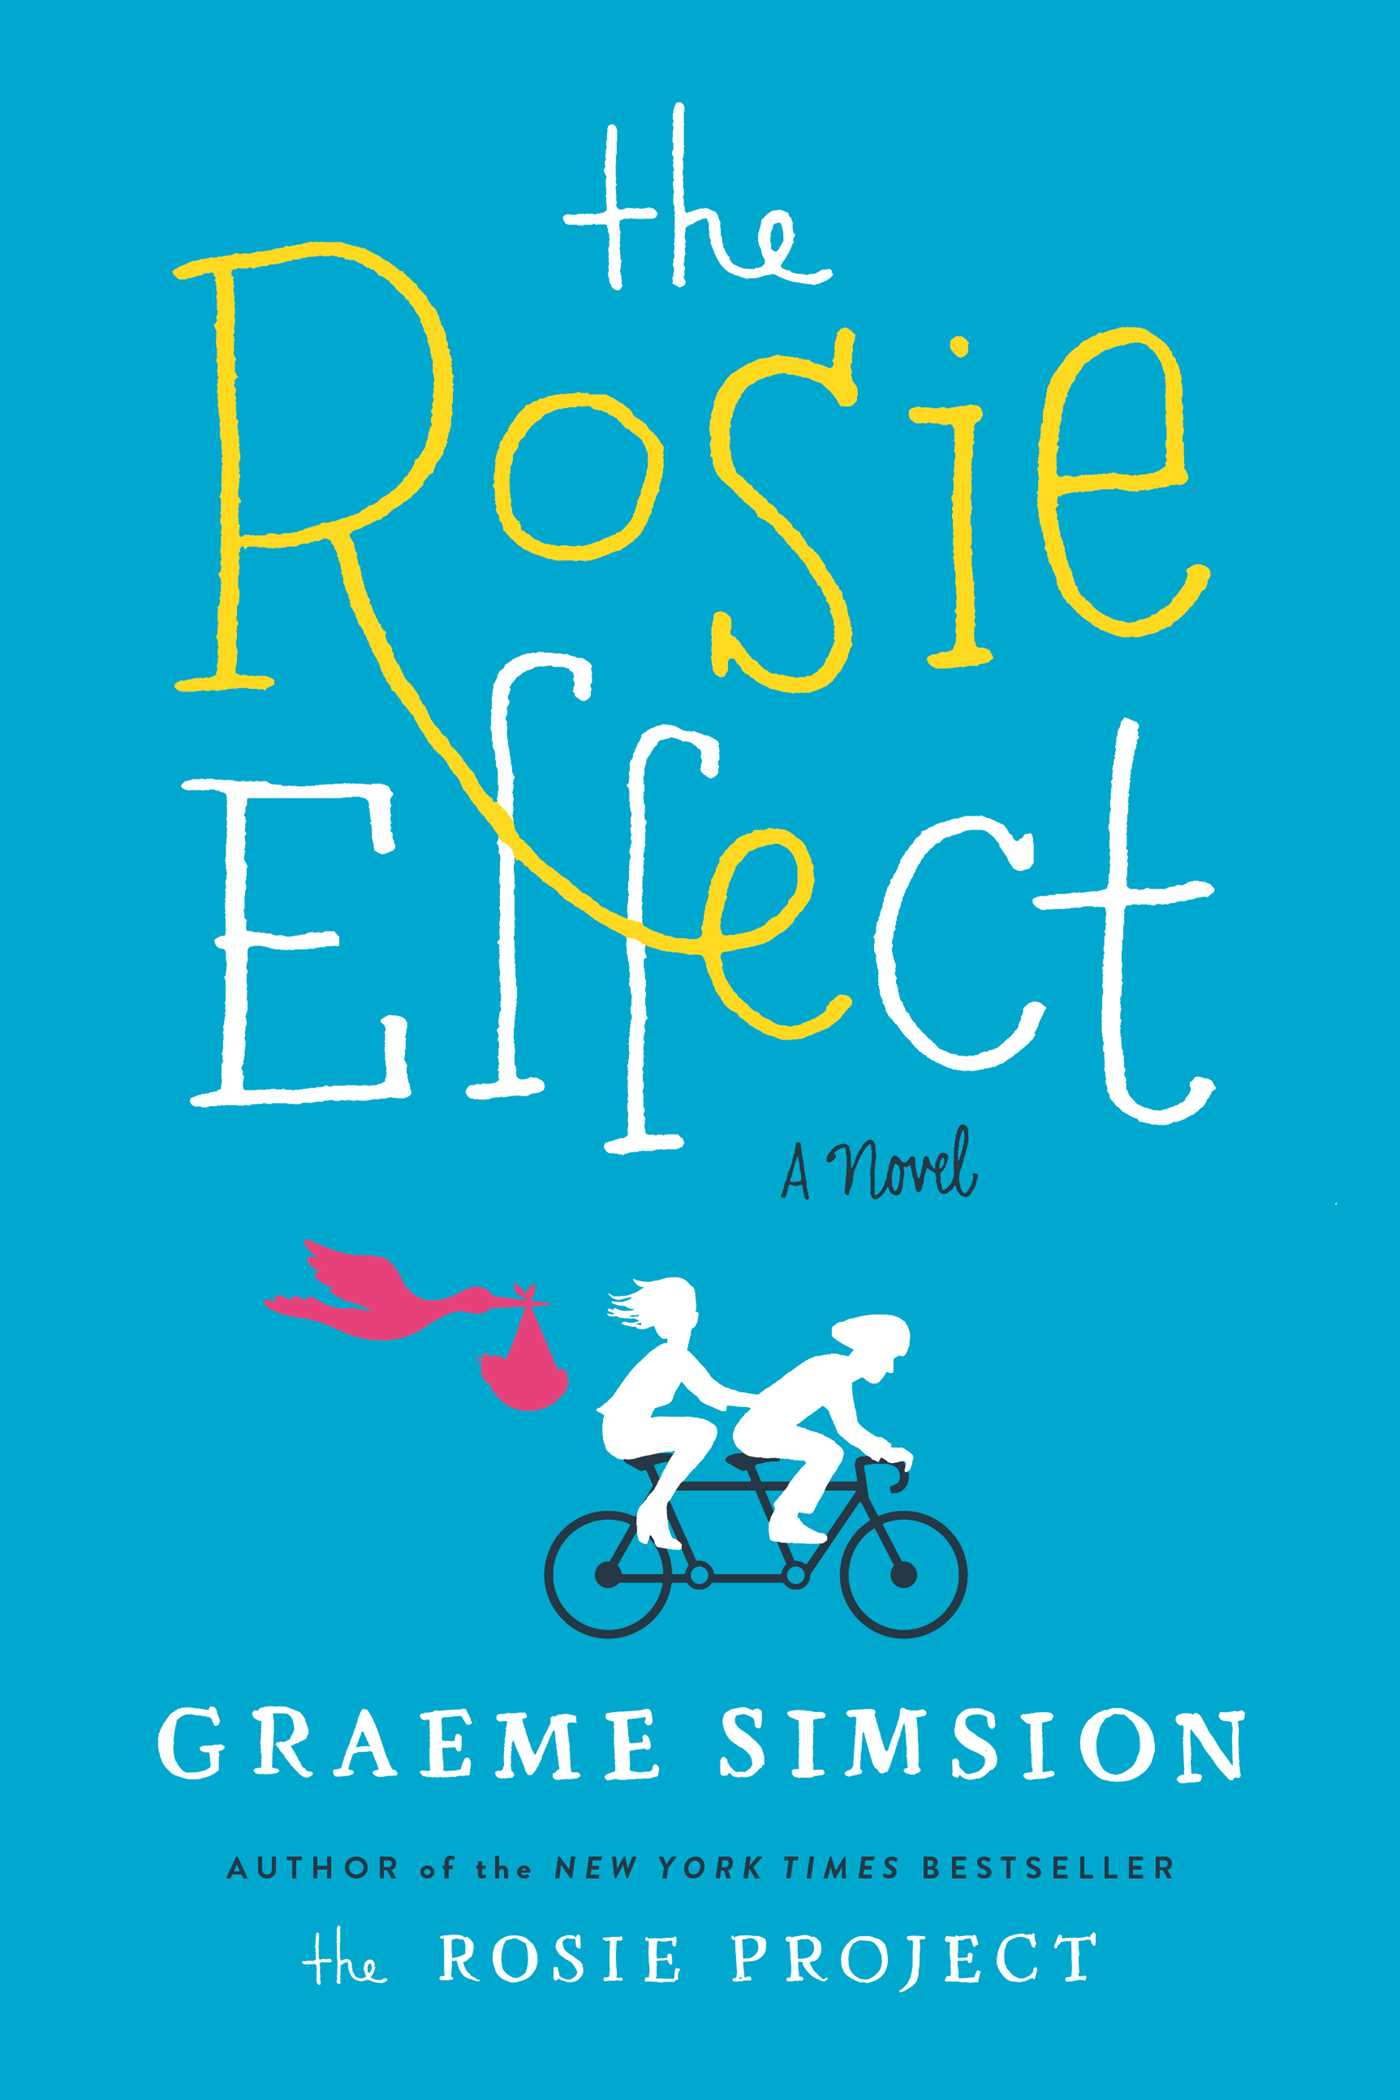 Rosie-effect-9781476767314_hr